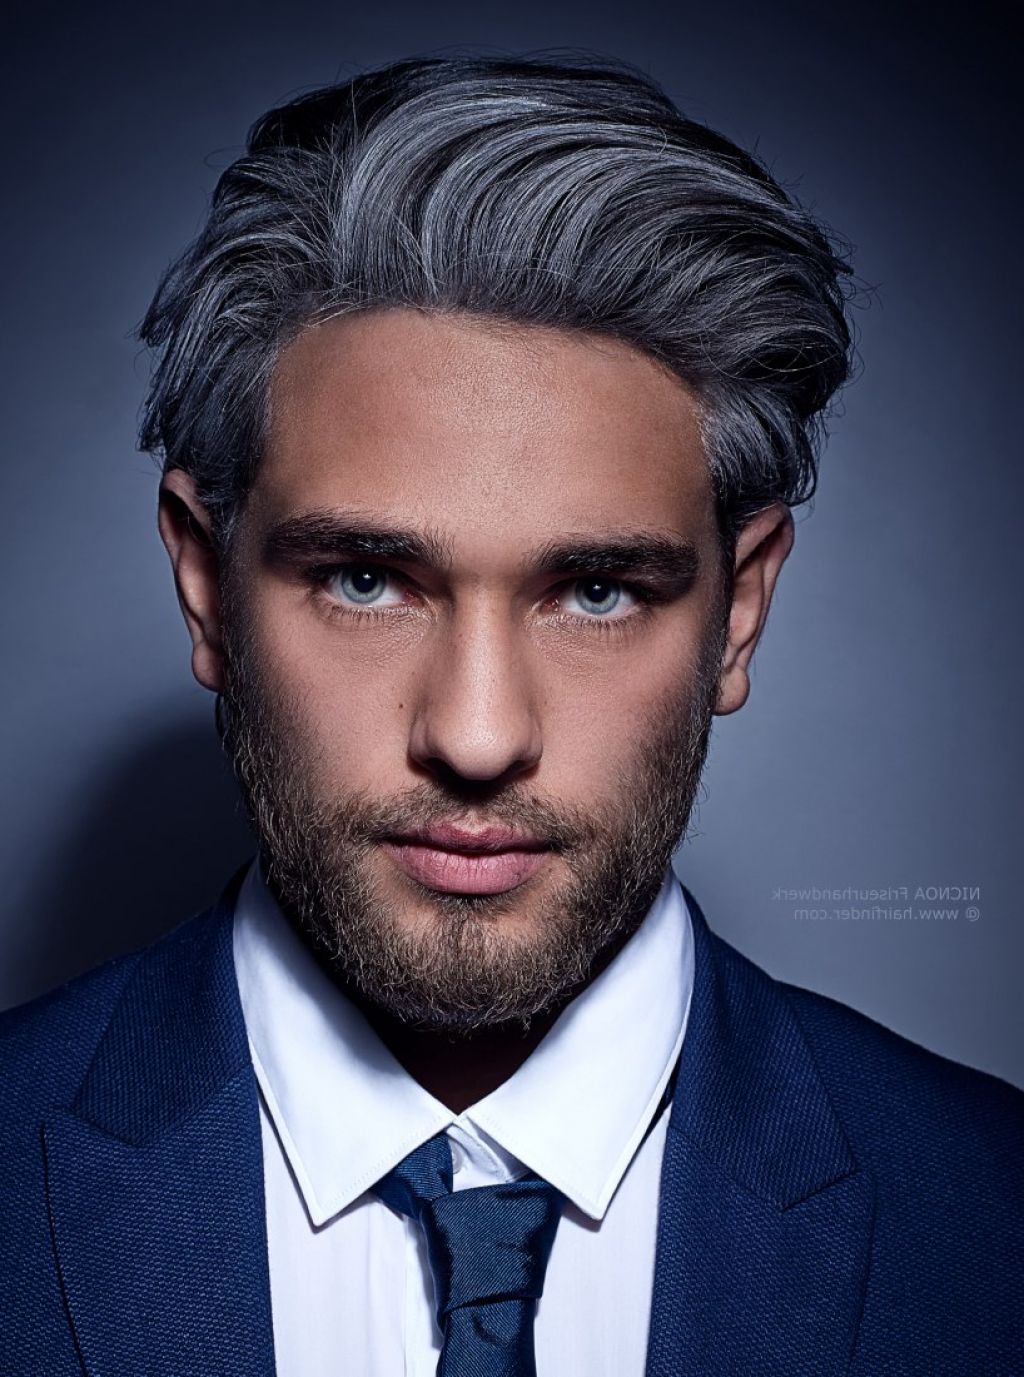 men-black-gray-hair-color-ideas-56610b392caa6